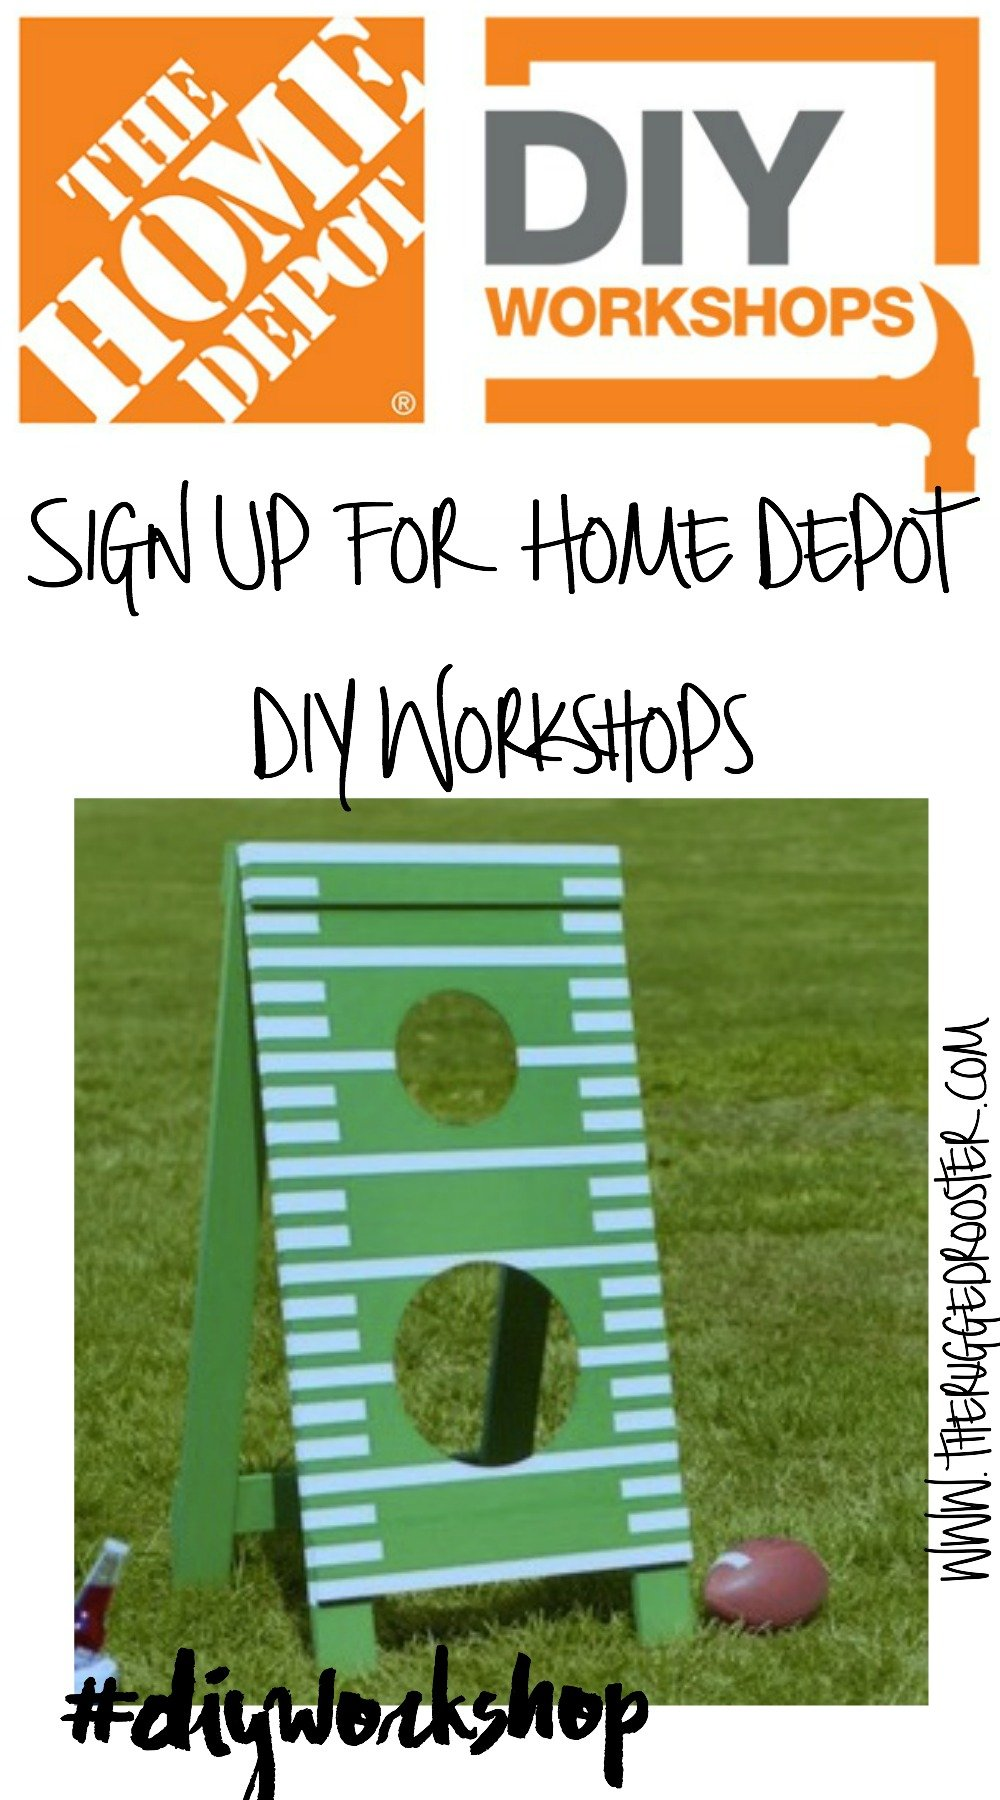 Home Depot DIY Workshop